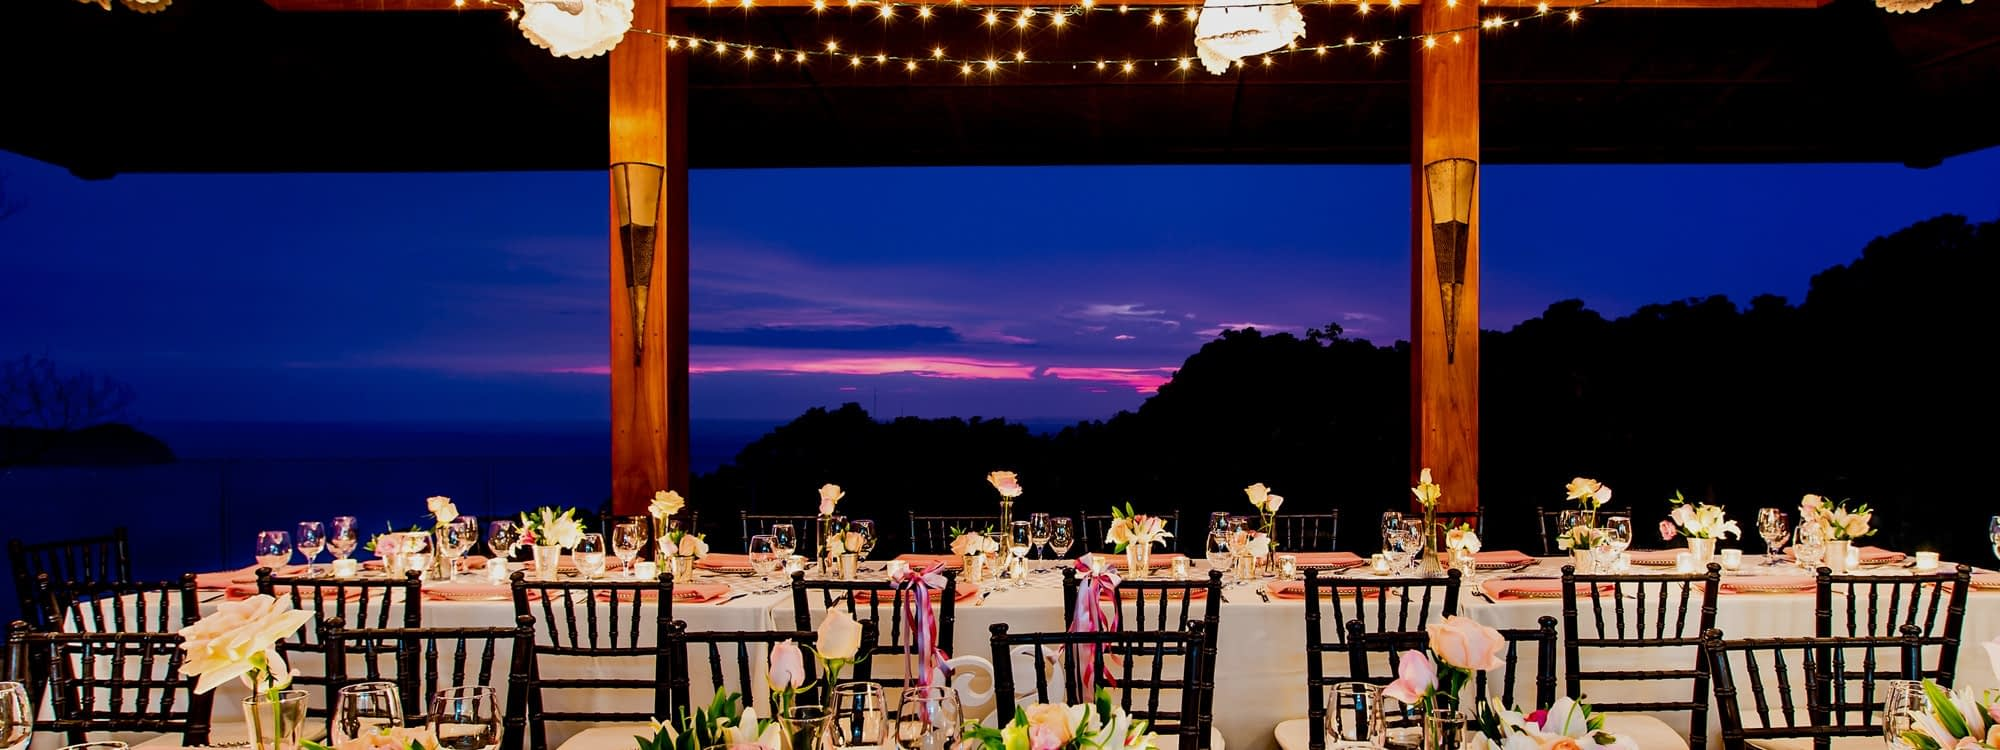 staff can help you plan your wedding